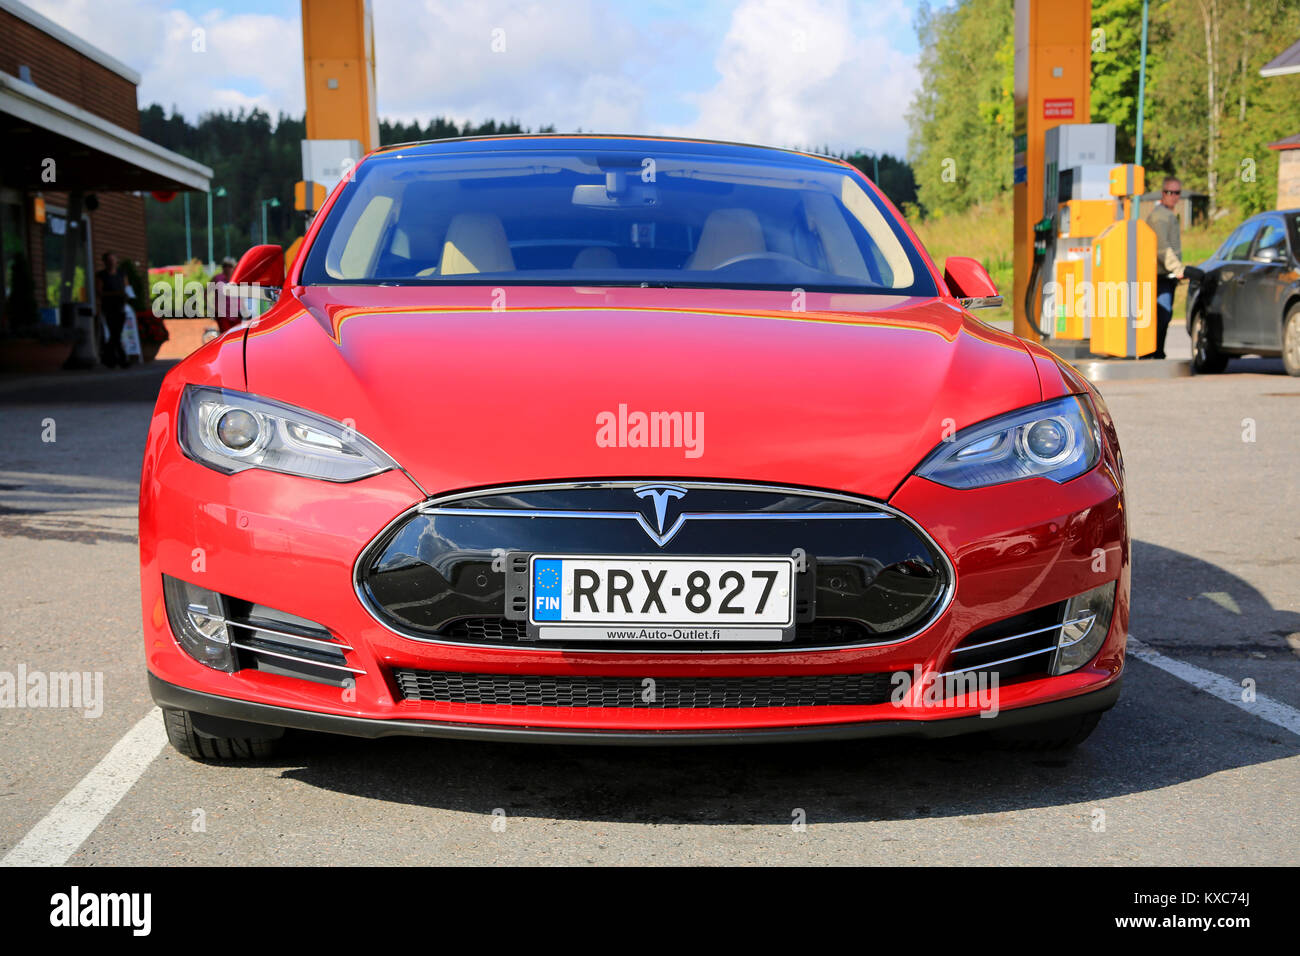 tesla electric car parked in stock photos tesla electric car parked in stock images alamy. Black Bedroom Furniture Sets. Home Design Ideas